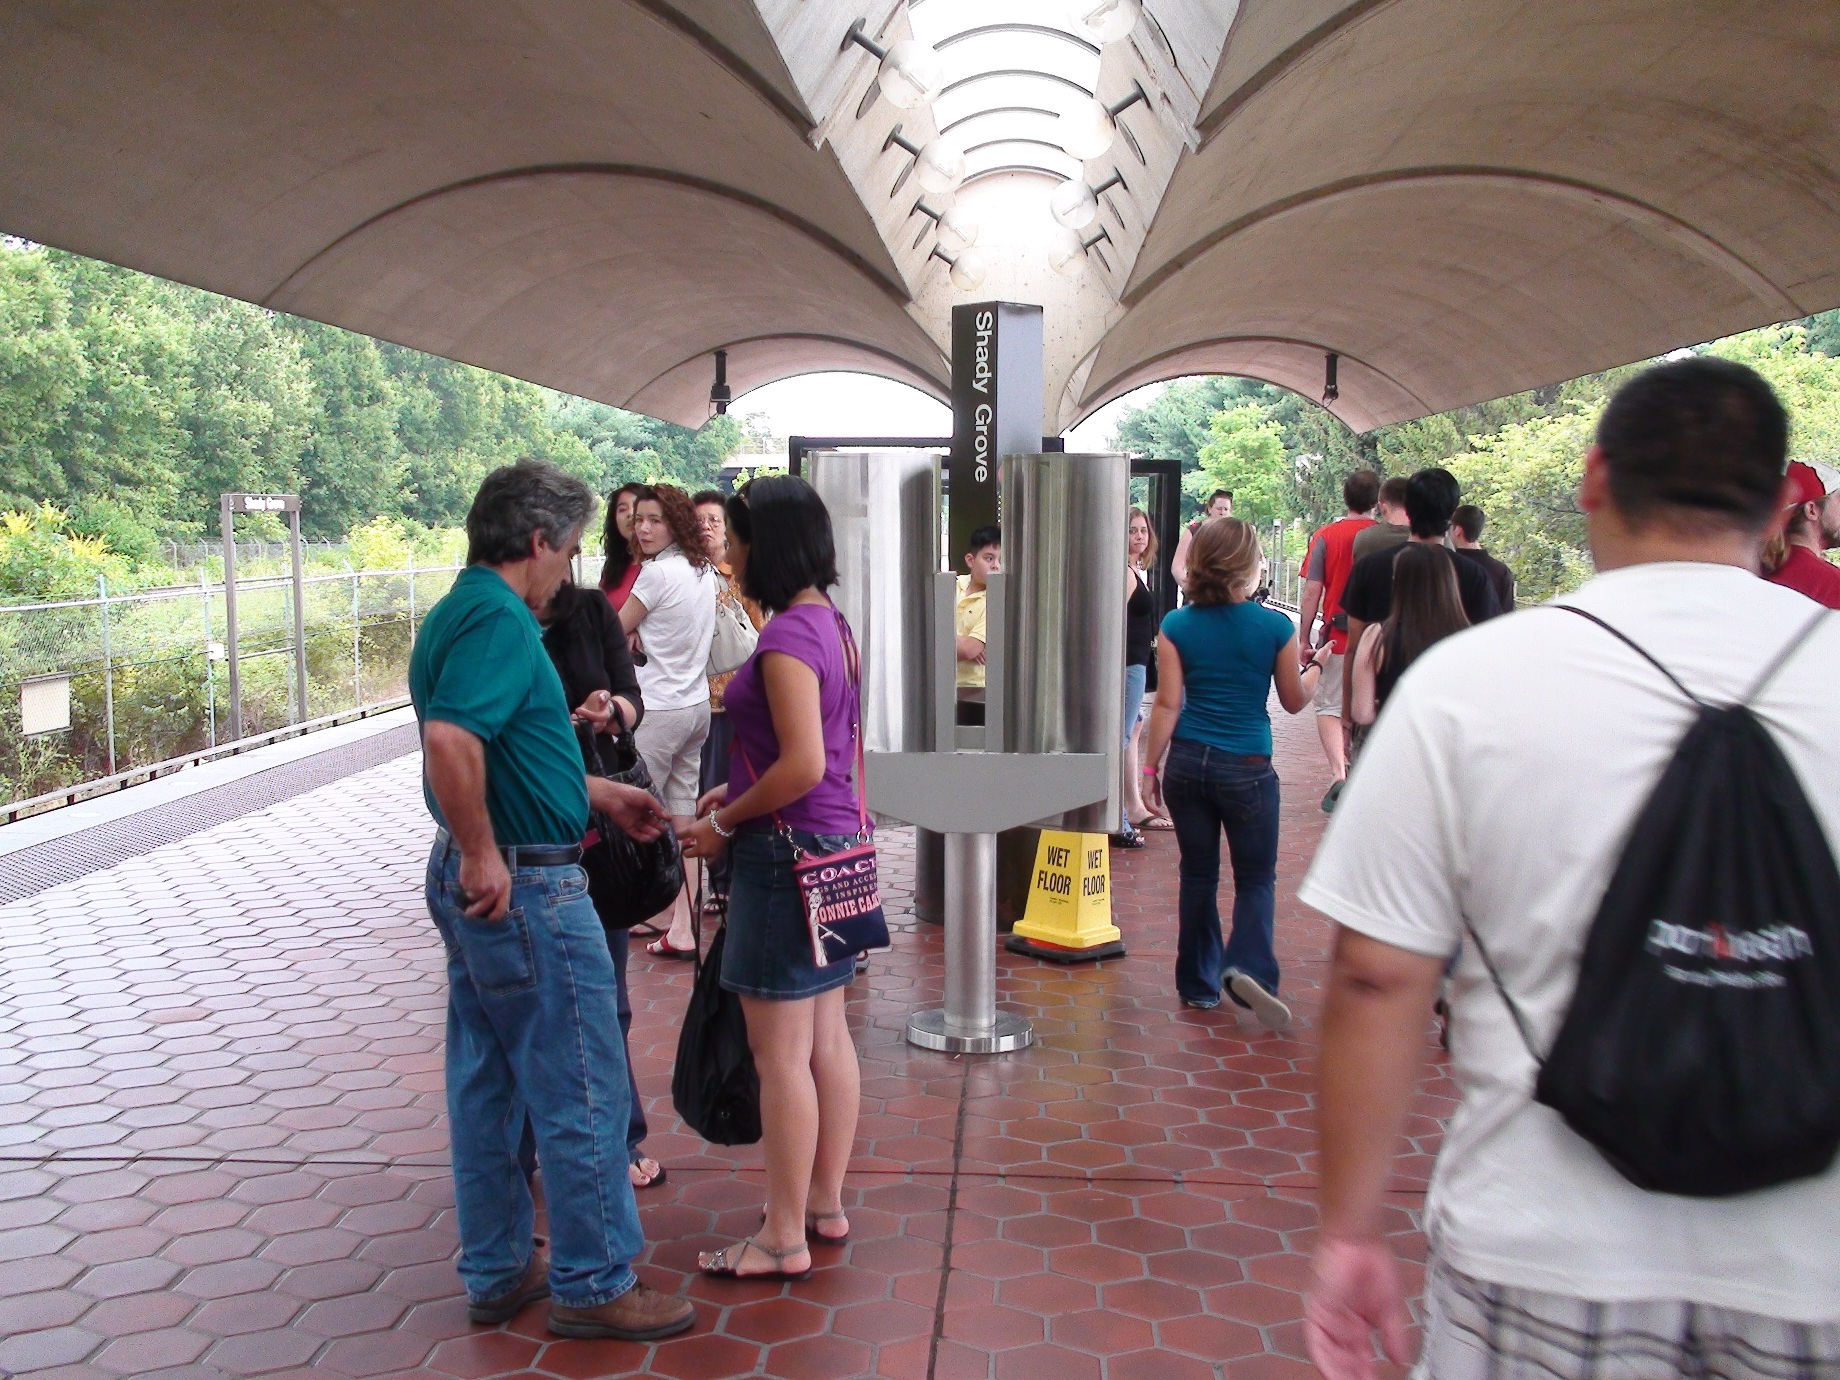 File shady grove wmata station derwood maryland july 4 for Shady grove